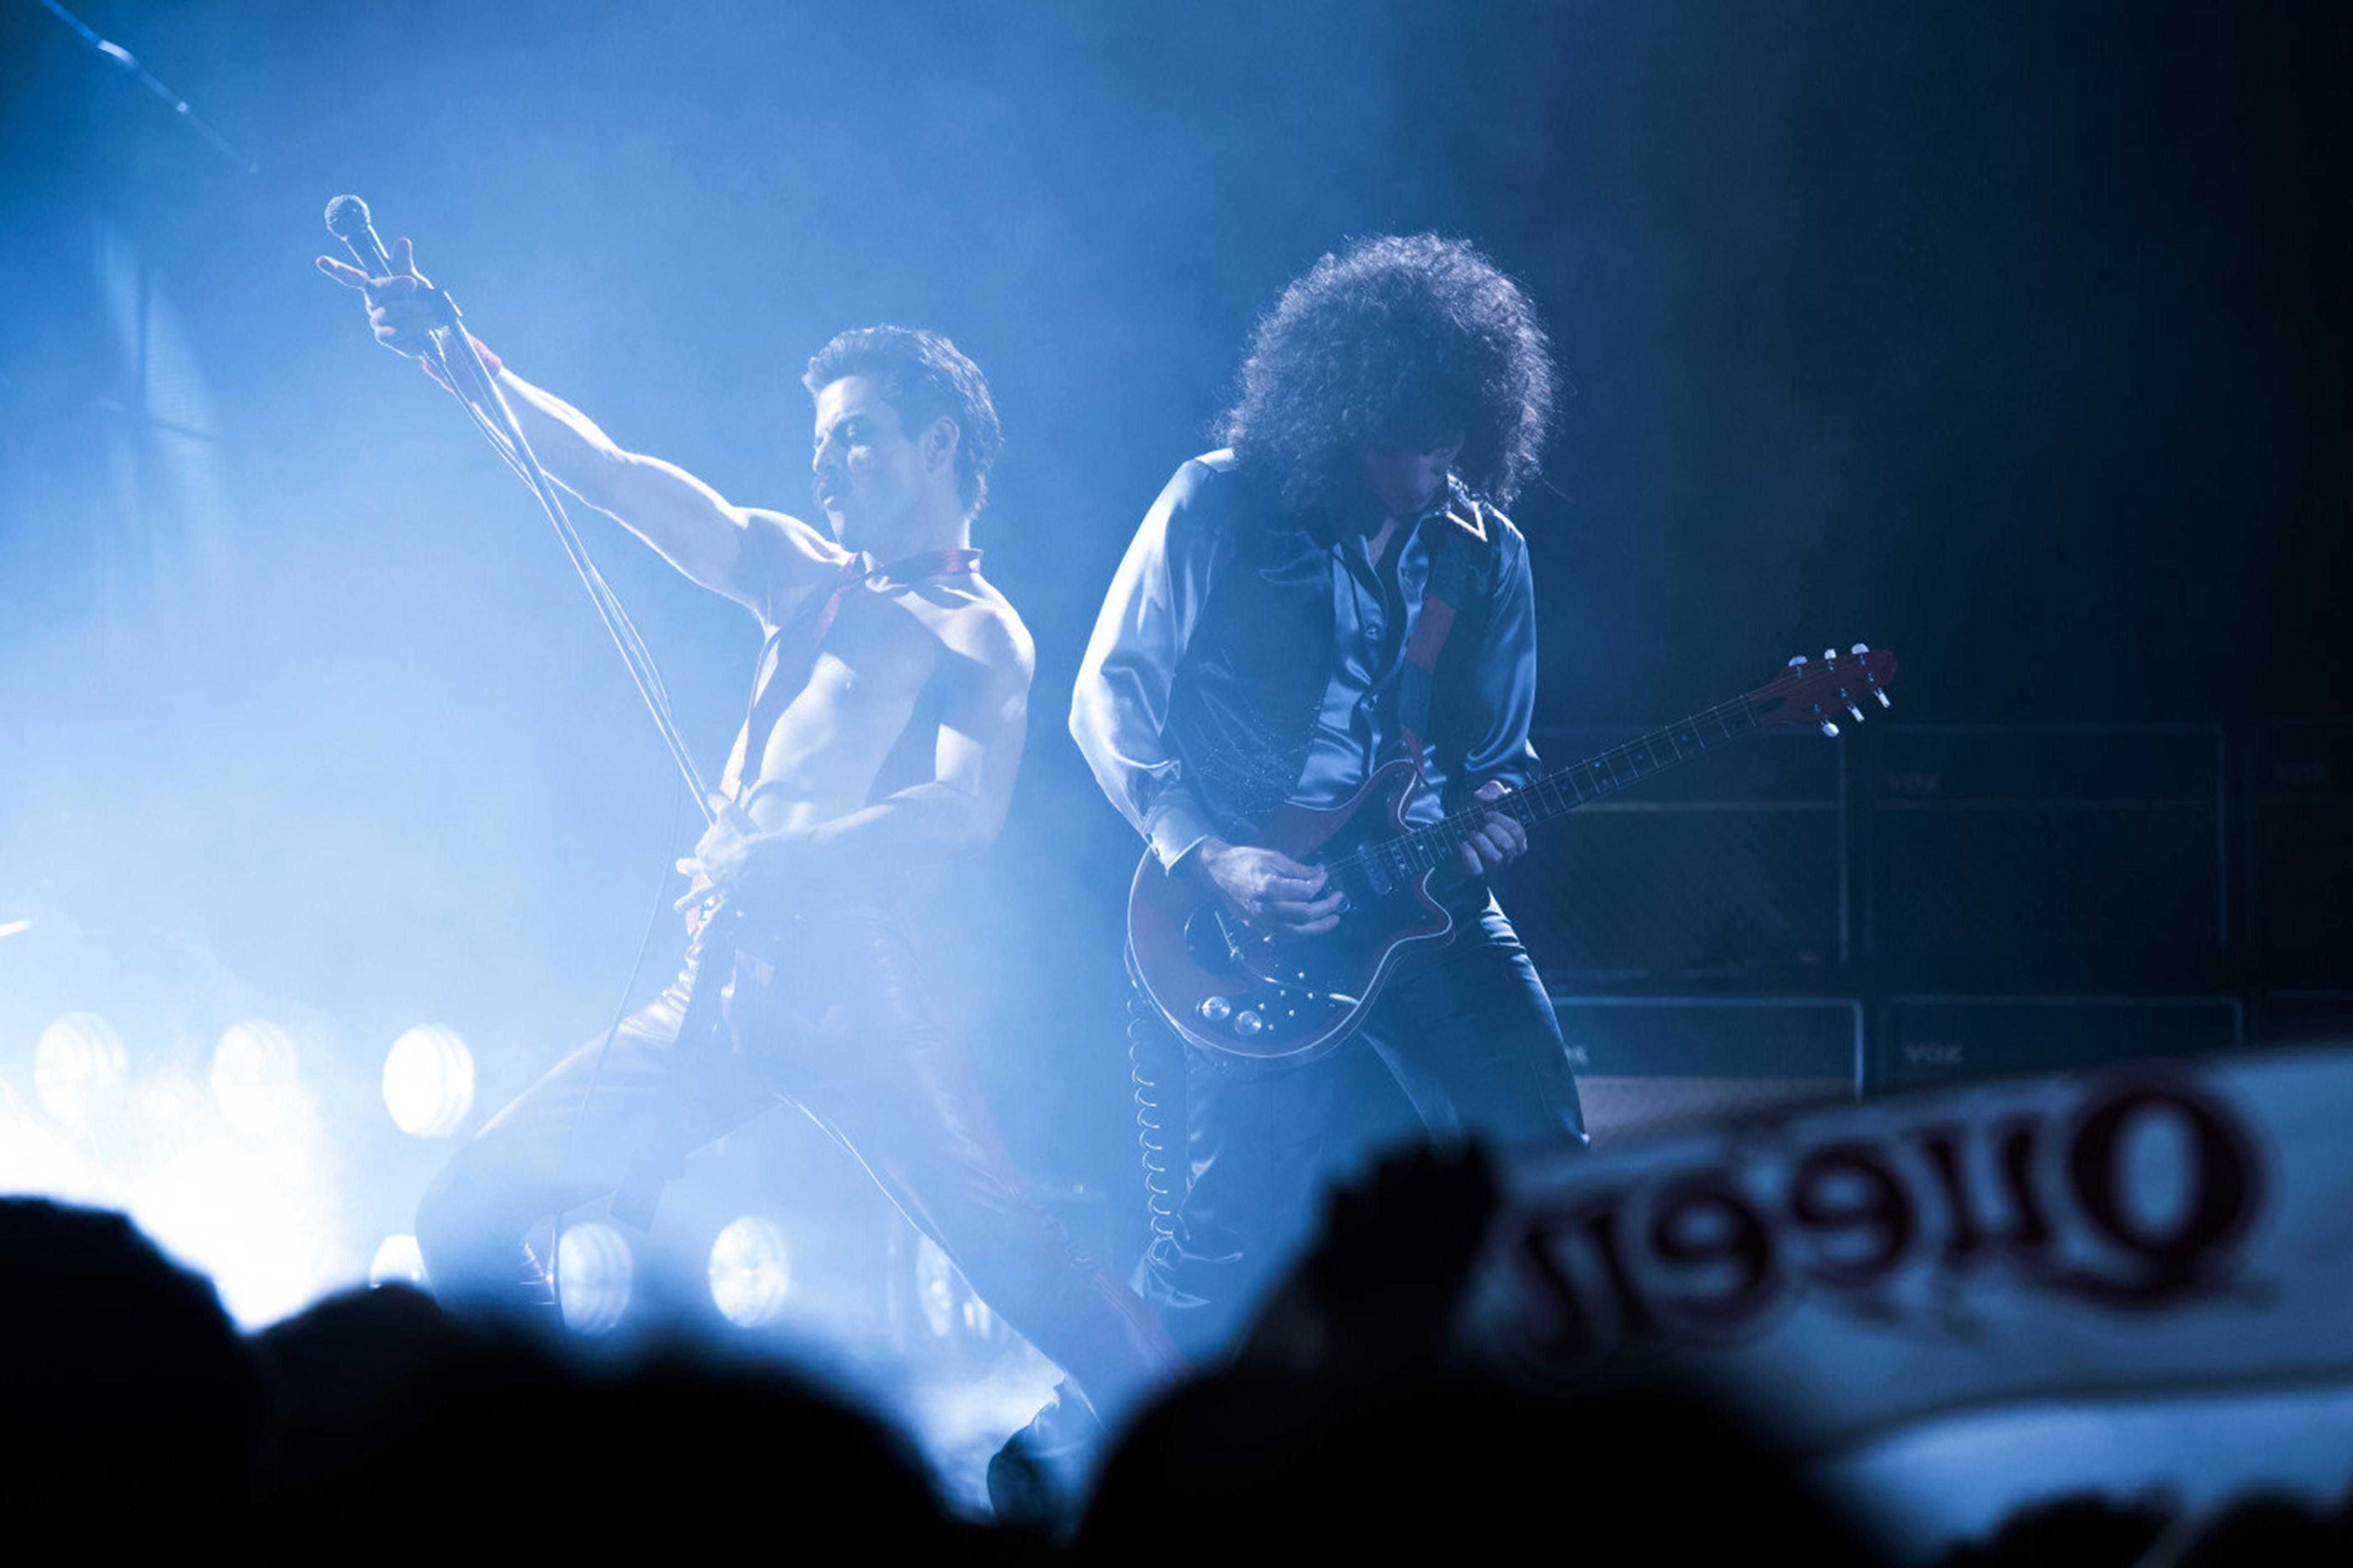 Brian May Claims 'Bohemian Rhapsody' Has Been Snubbed At This Year's Baftas, Despite 7